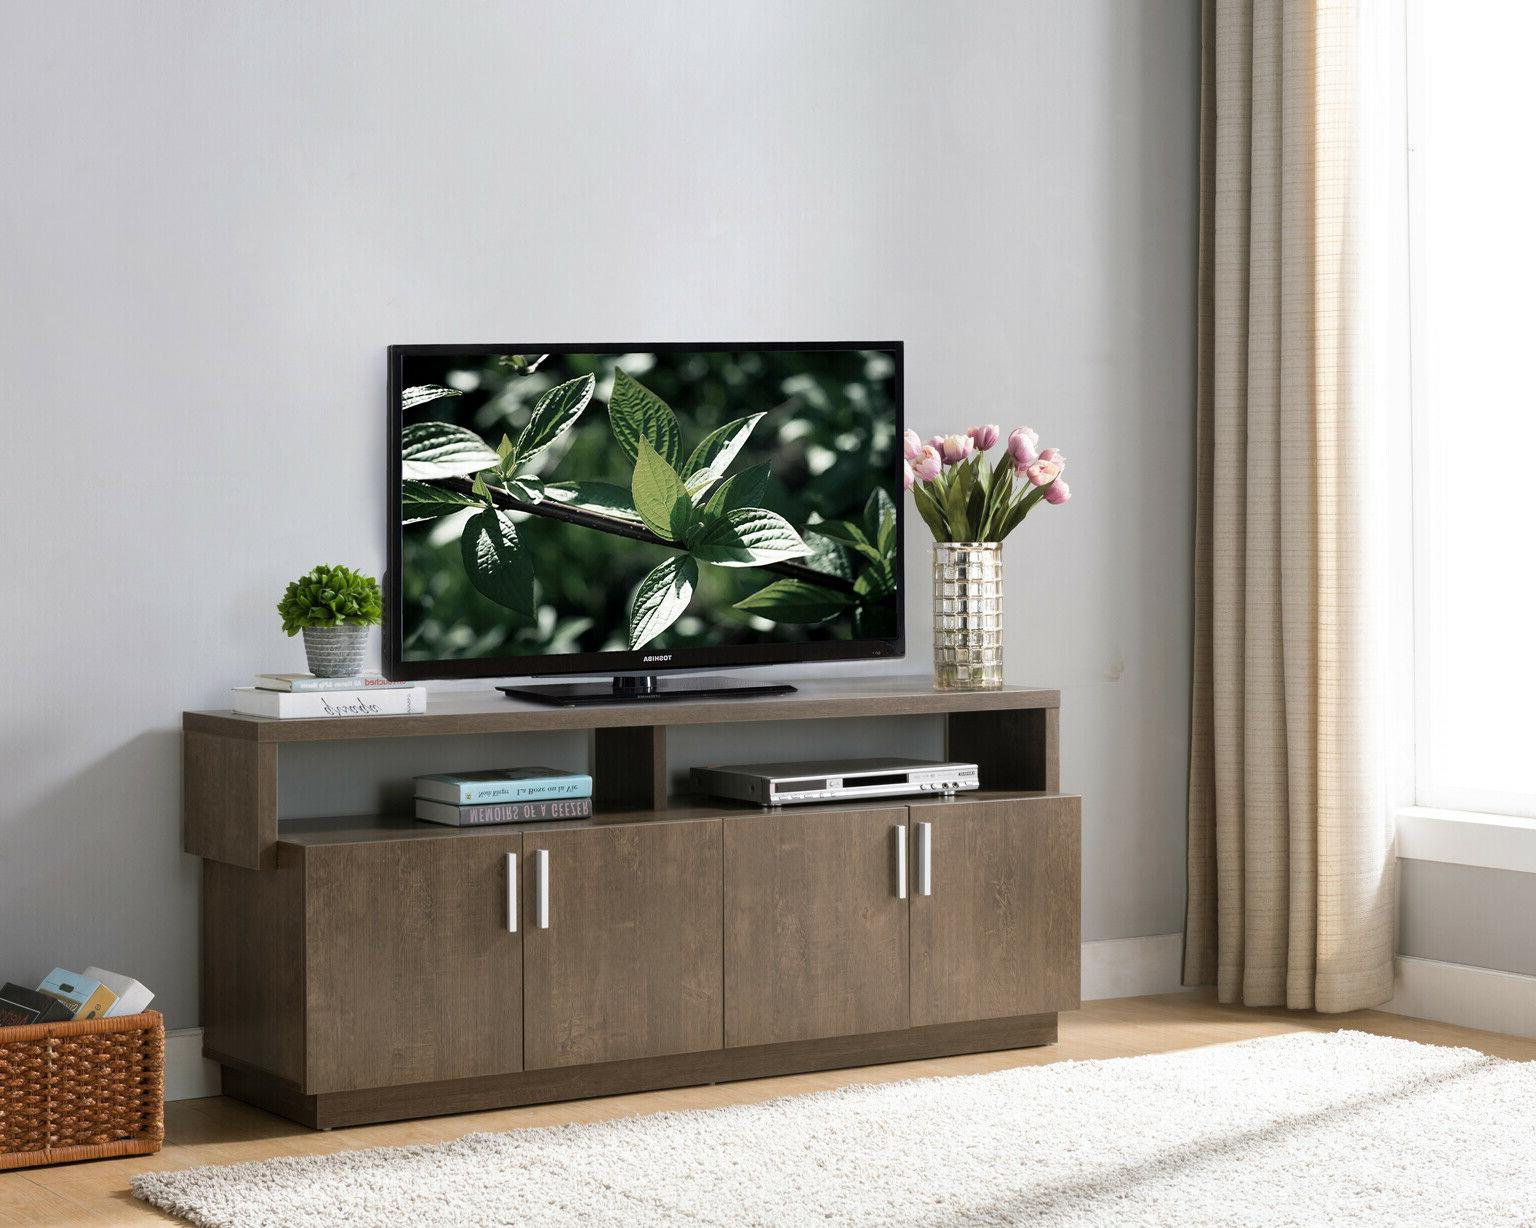 182342 Home Inch TV Center Stand for Room